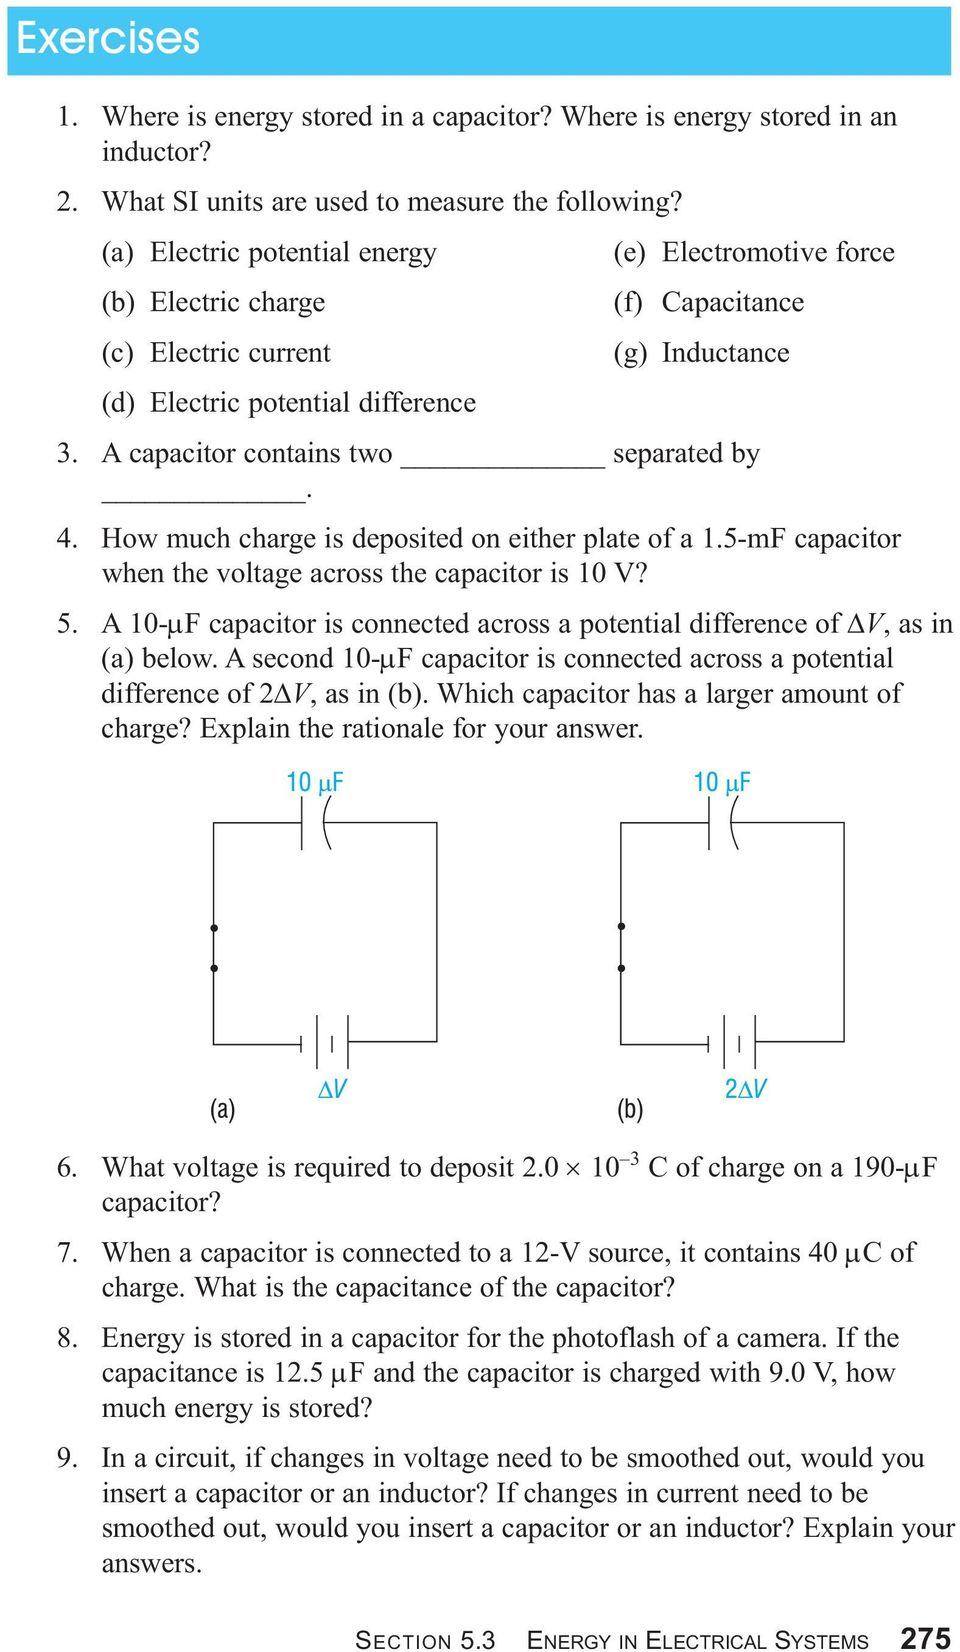 A capacitor contains two separated by. 4. How much charge is deposited on either plate of a.5-mf capacitor when the voltage across the capacitor is 0 V? 5.